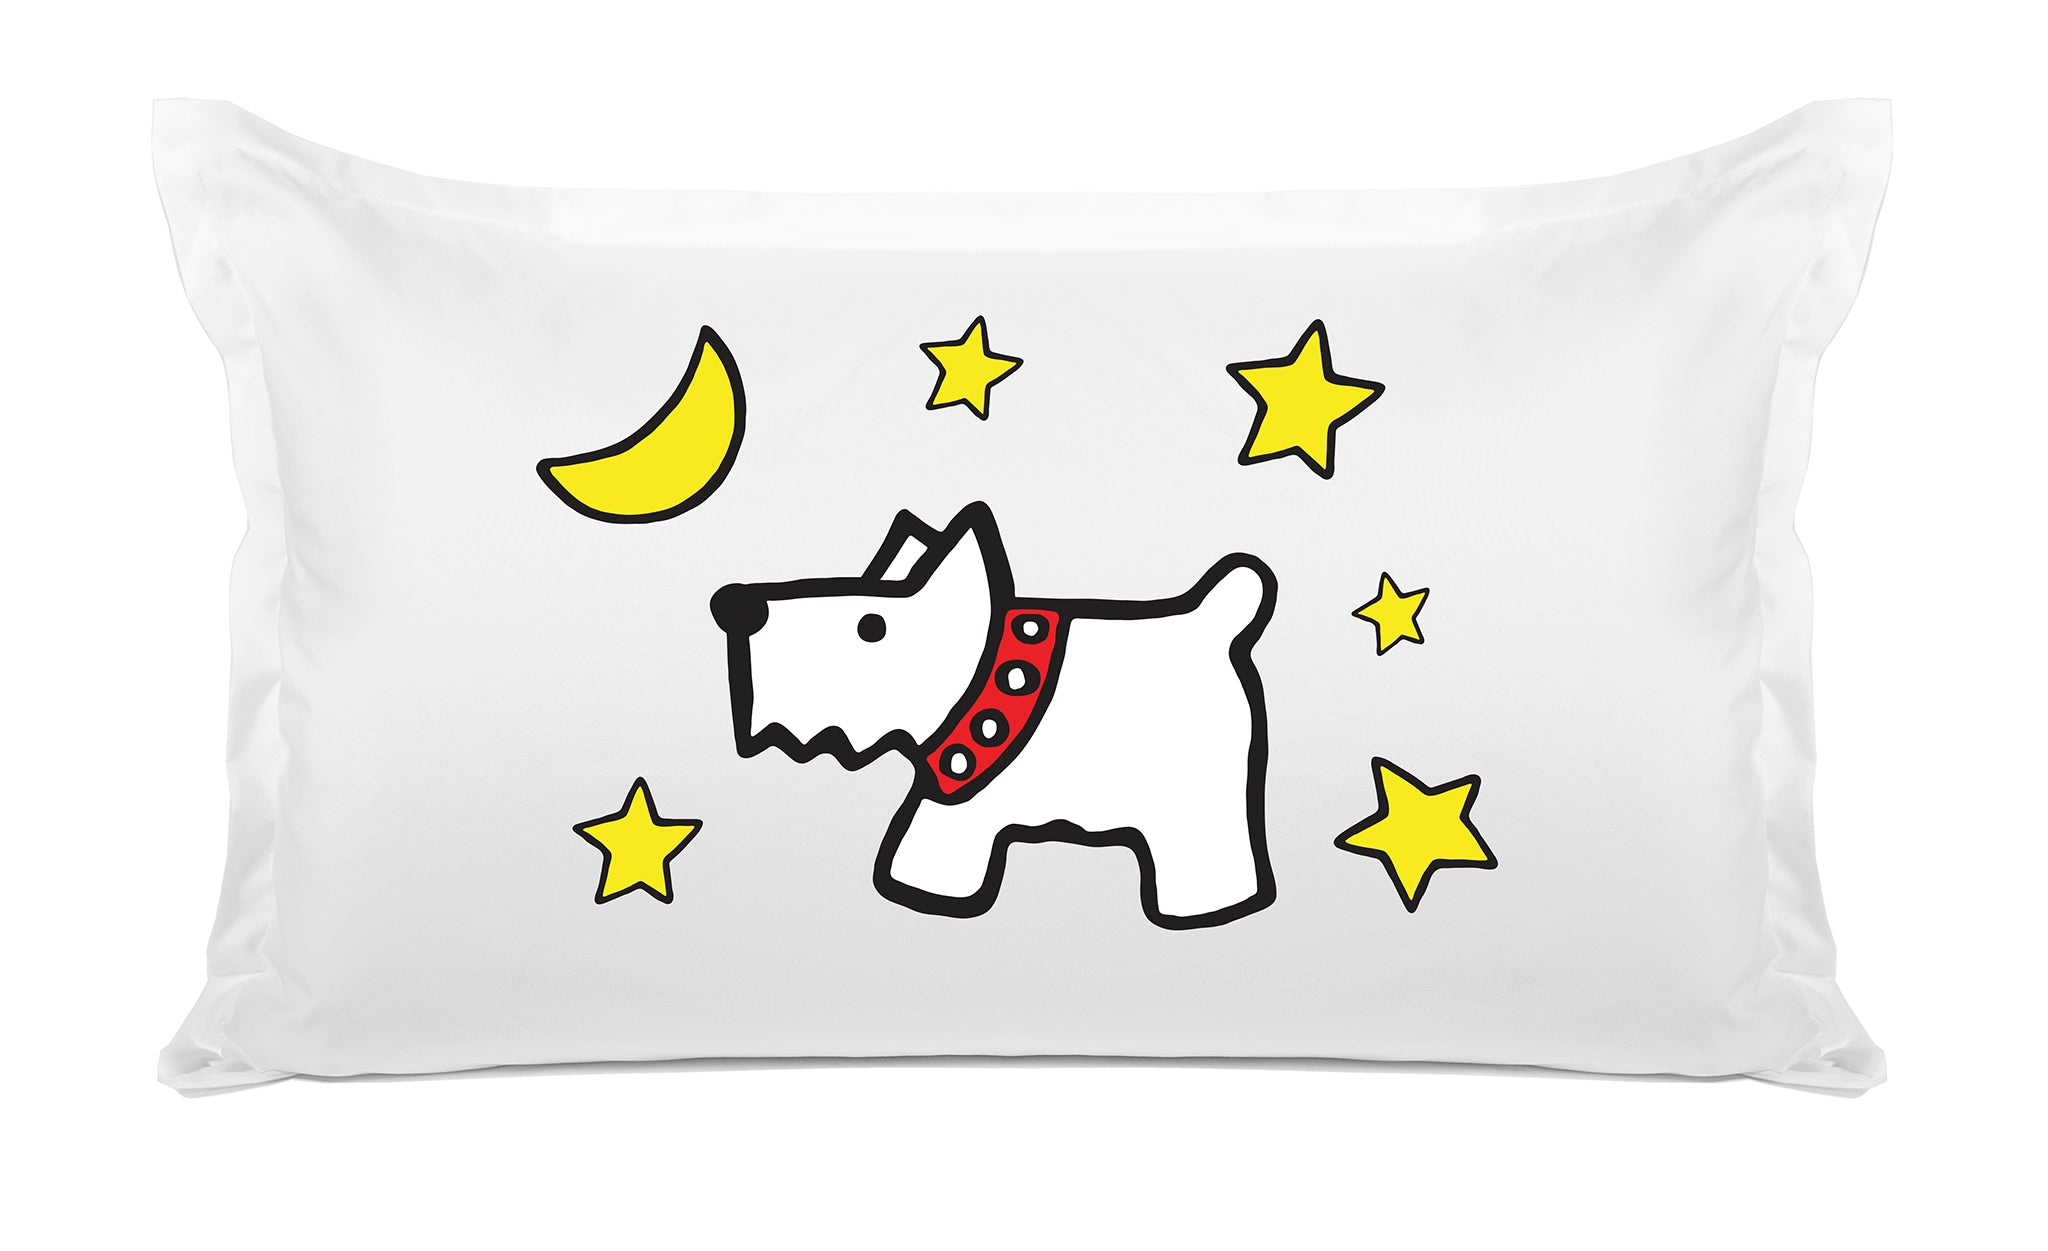 Moon Dog Kids Pillow, Di Lewis Kids Bedding